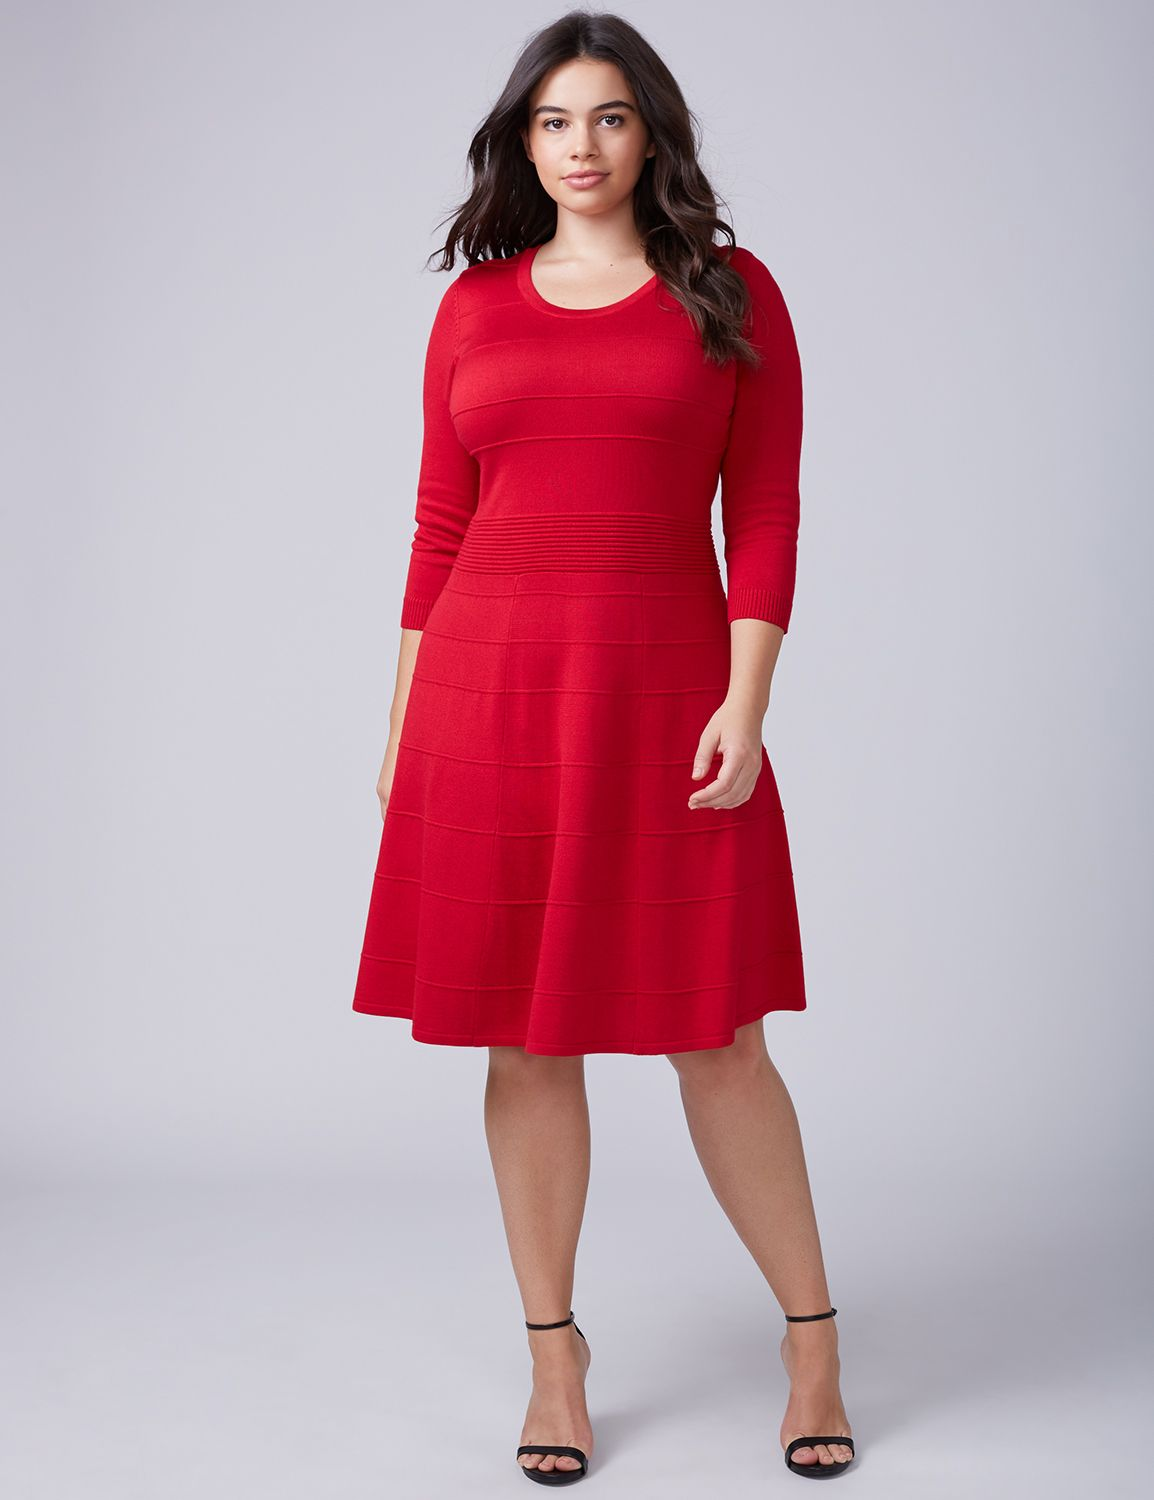 Lane Bryant Women's 3 / 4 - Sleeve Sweater Dress 26 / 28 Venetian Red